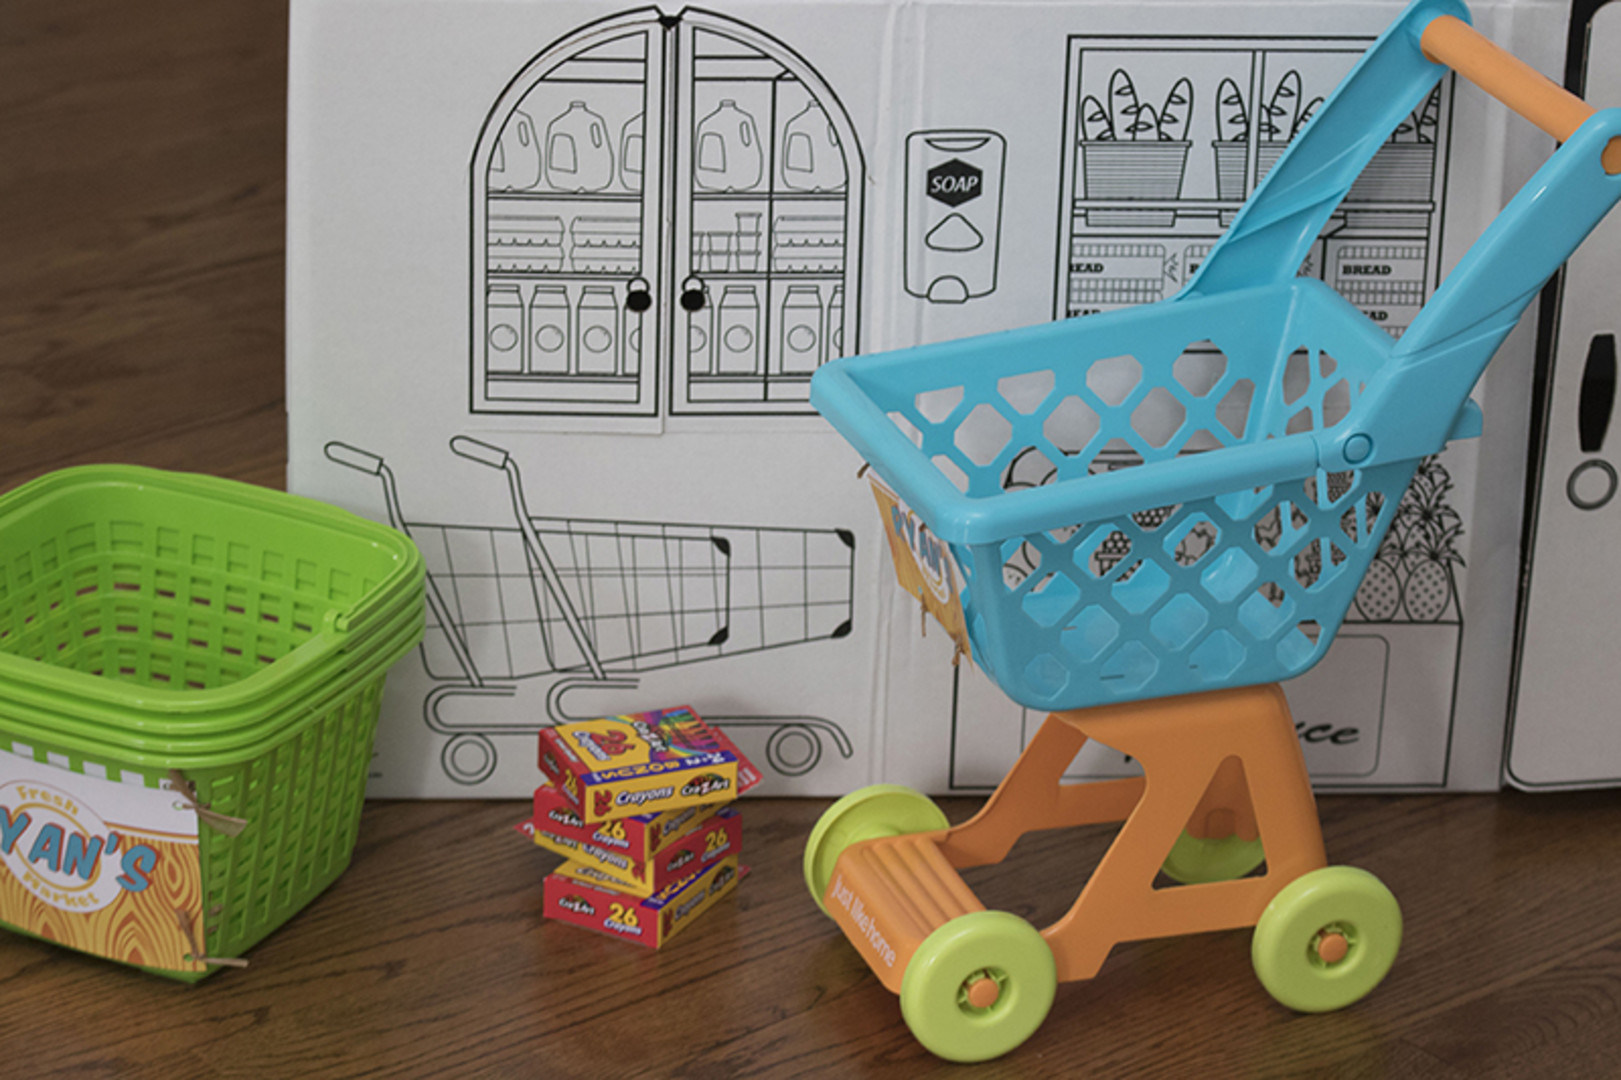 grocery store cart and basket toys at birthday party